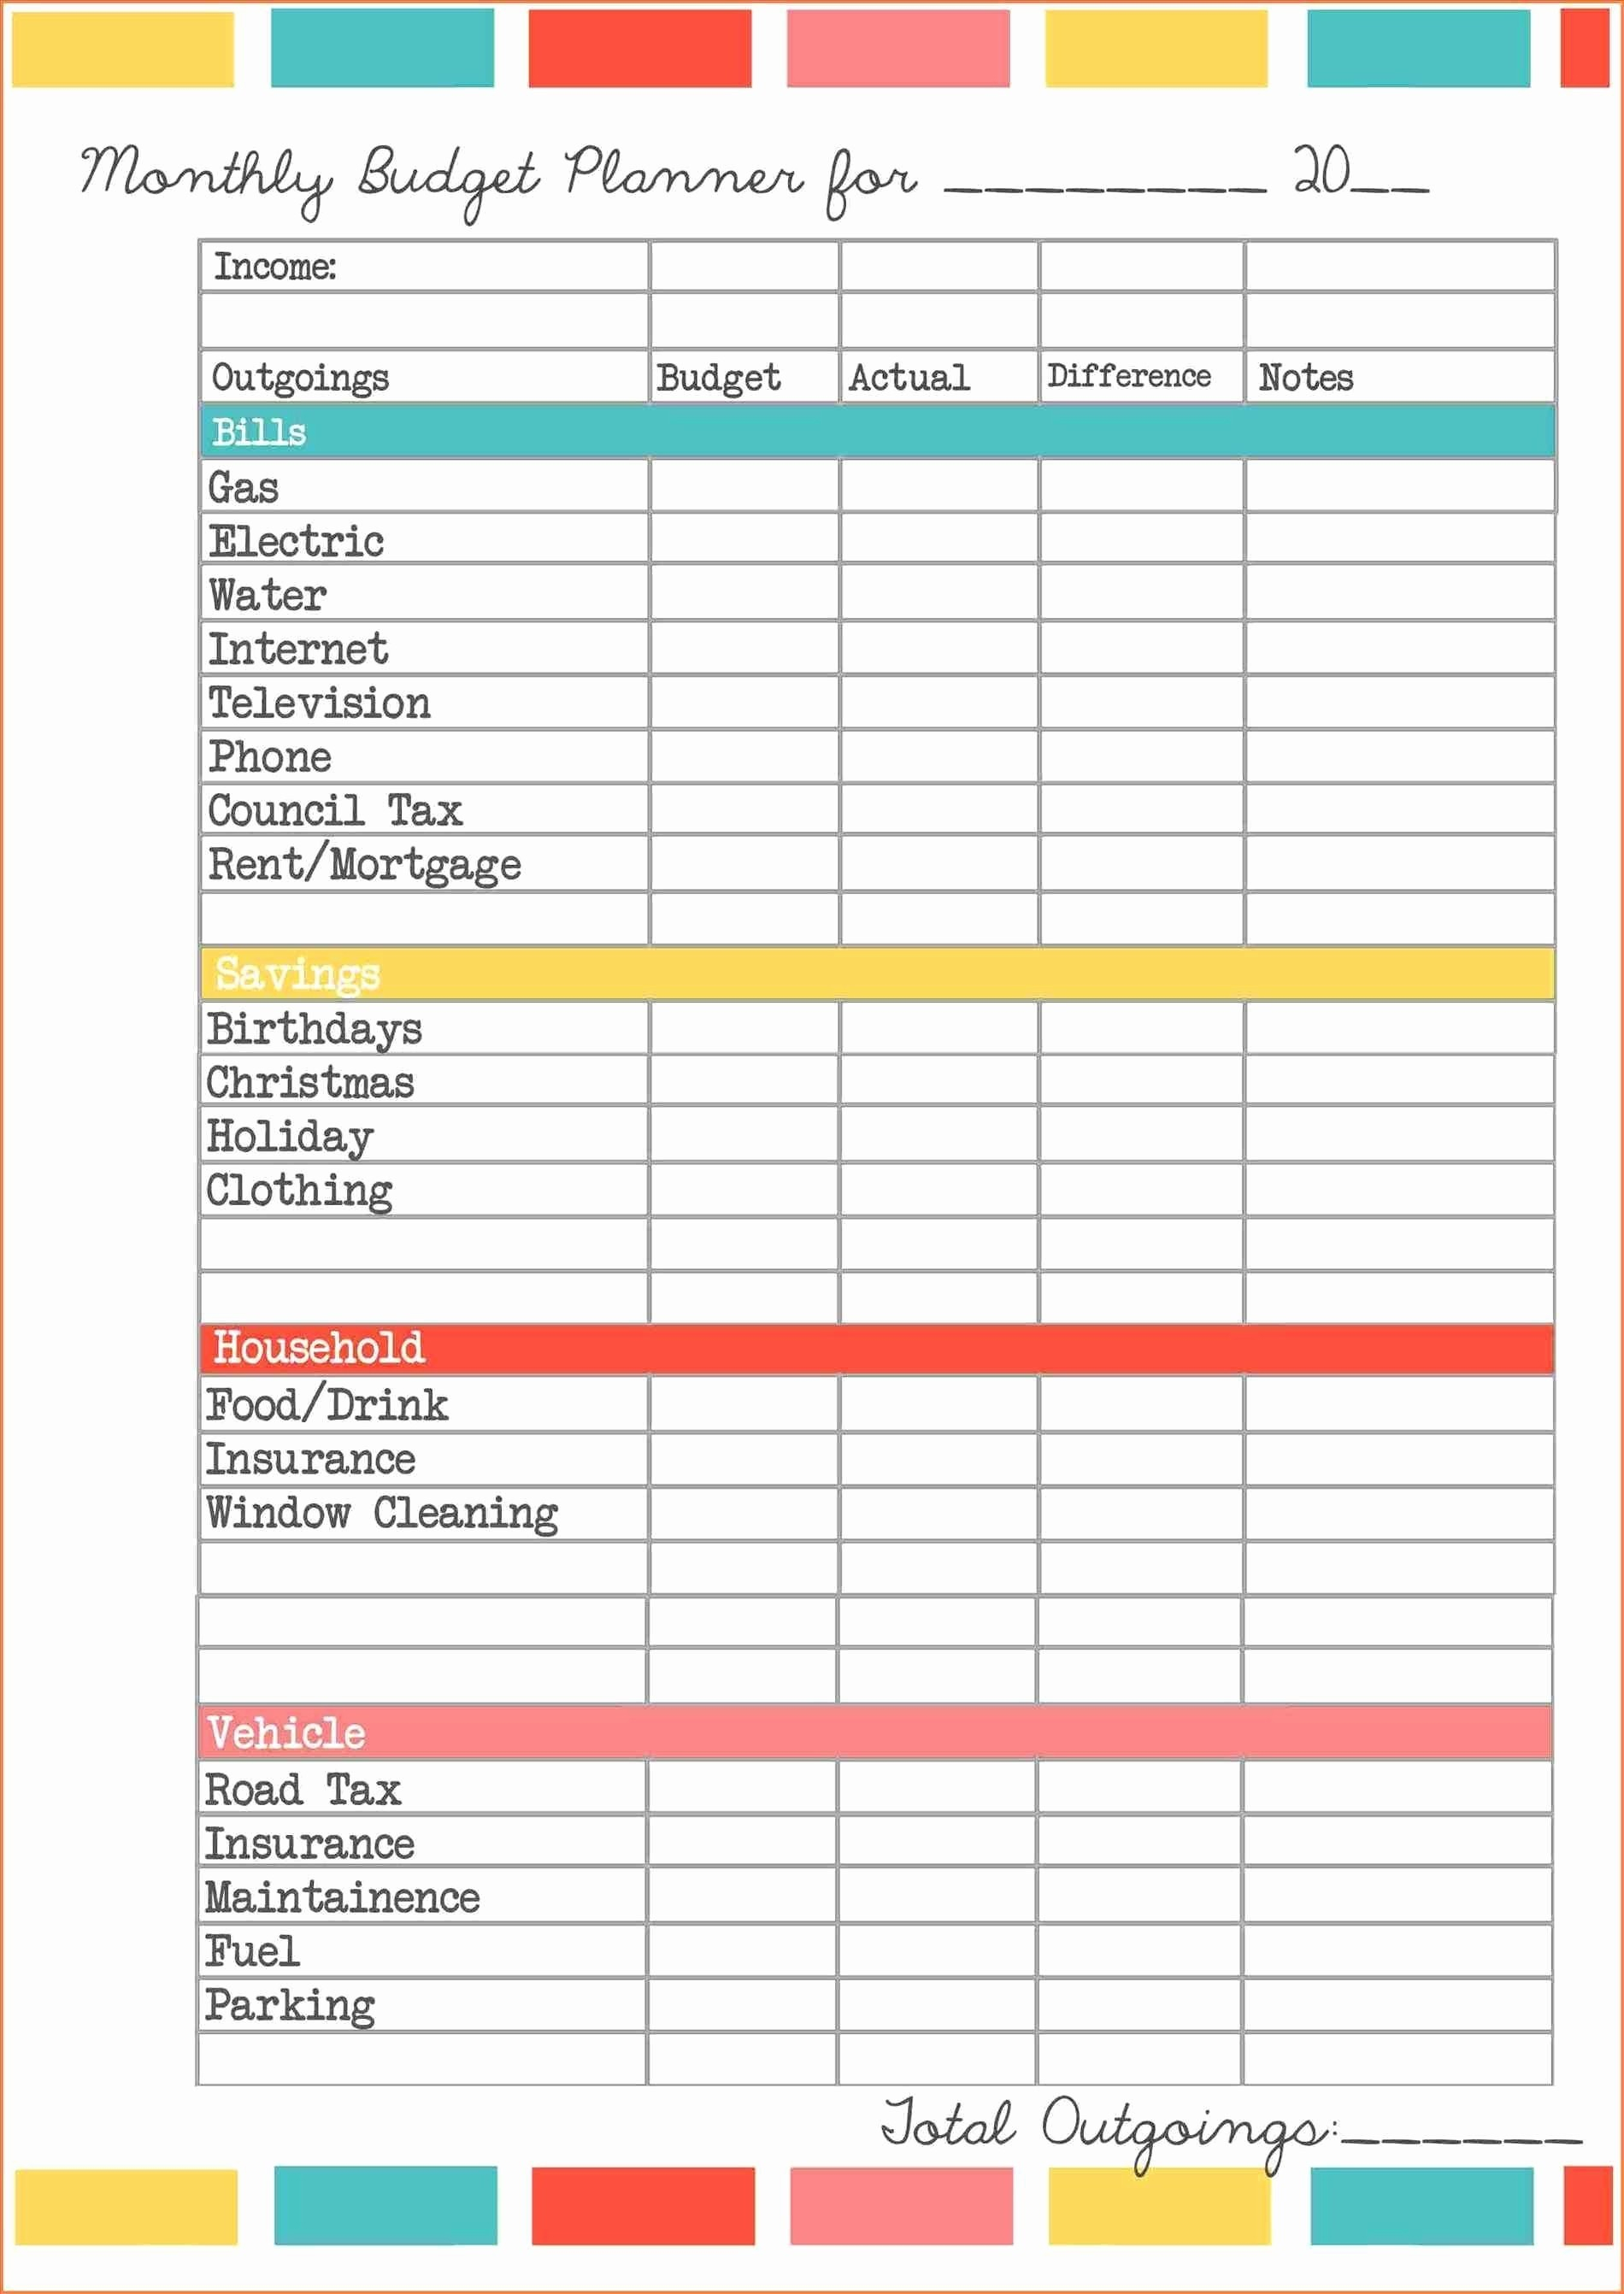 Bookkeeping Templates For Small Business Inspirationa Excel And Spreadsheet For Small Business Bookkeeping